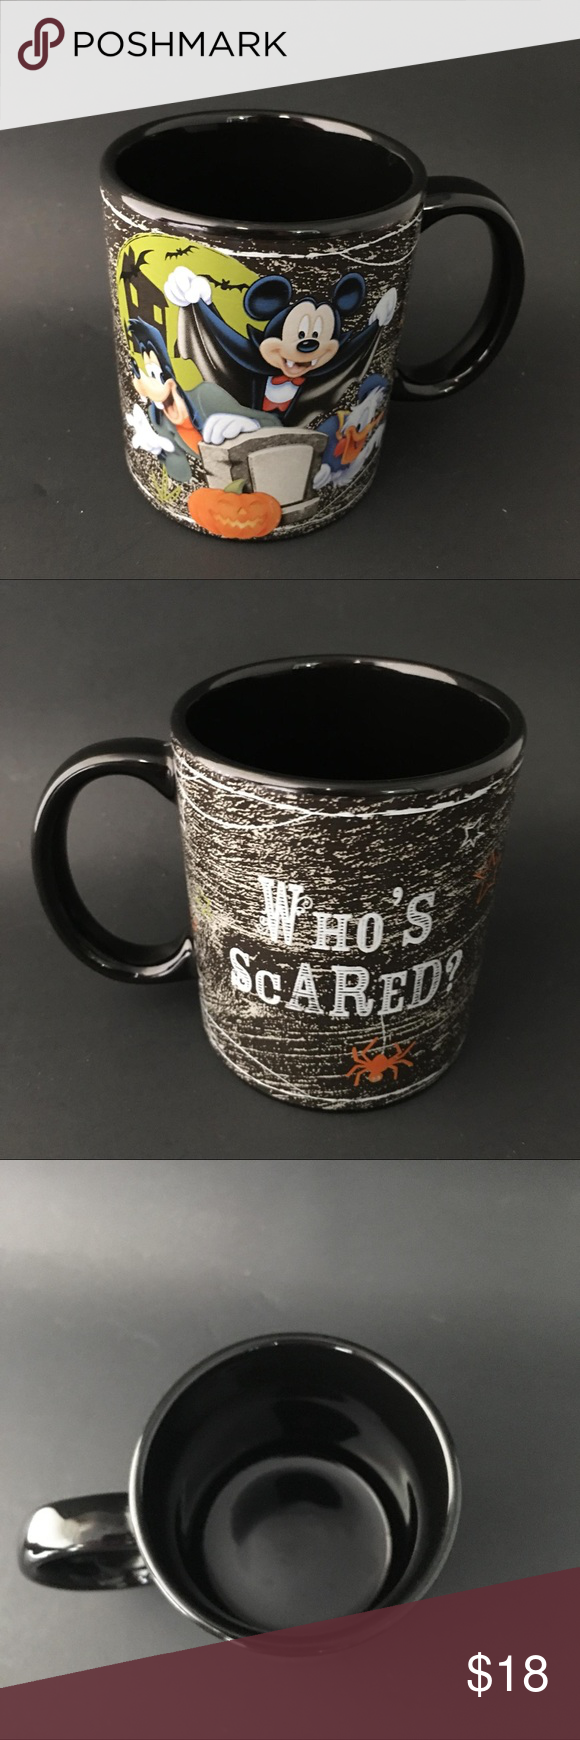 Disney Mickey Halloween Mug Who's Scared A02 Disney Mickey Halloween Mug Who's Scared. Great Condition Disney Kitchen Coffee & Tea Accessories #disneykitchen